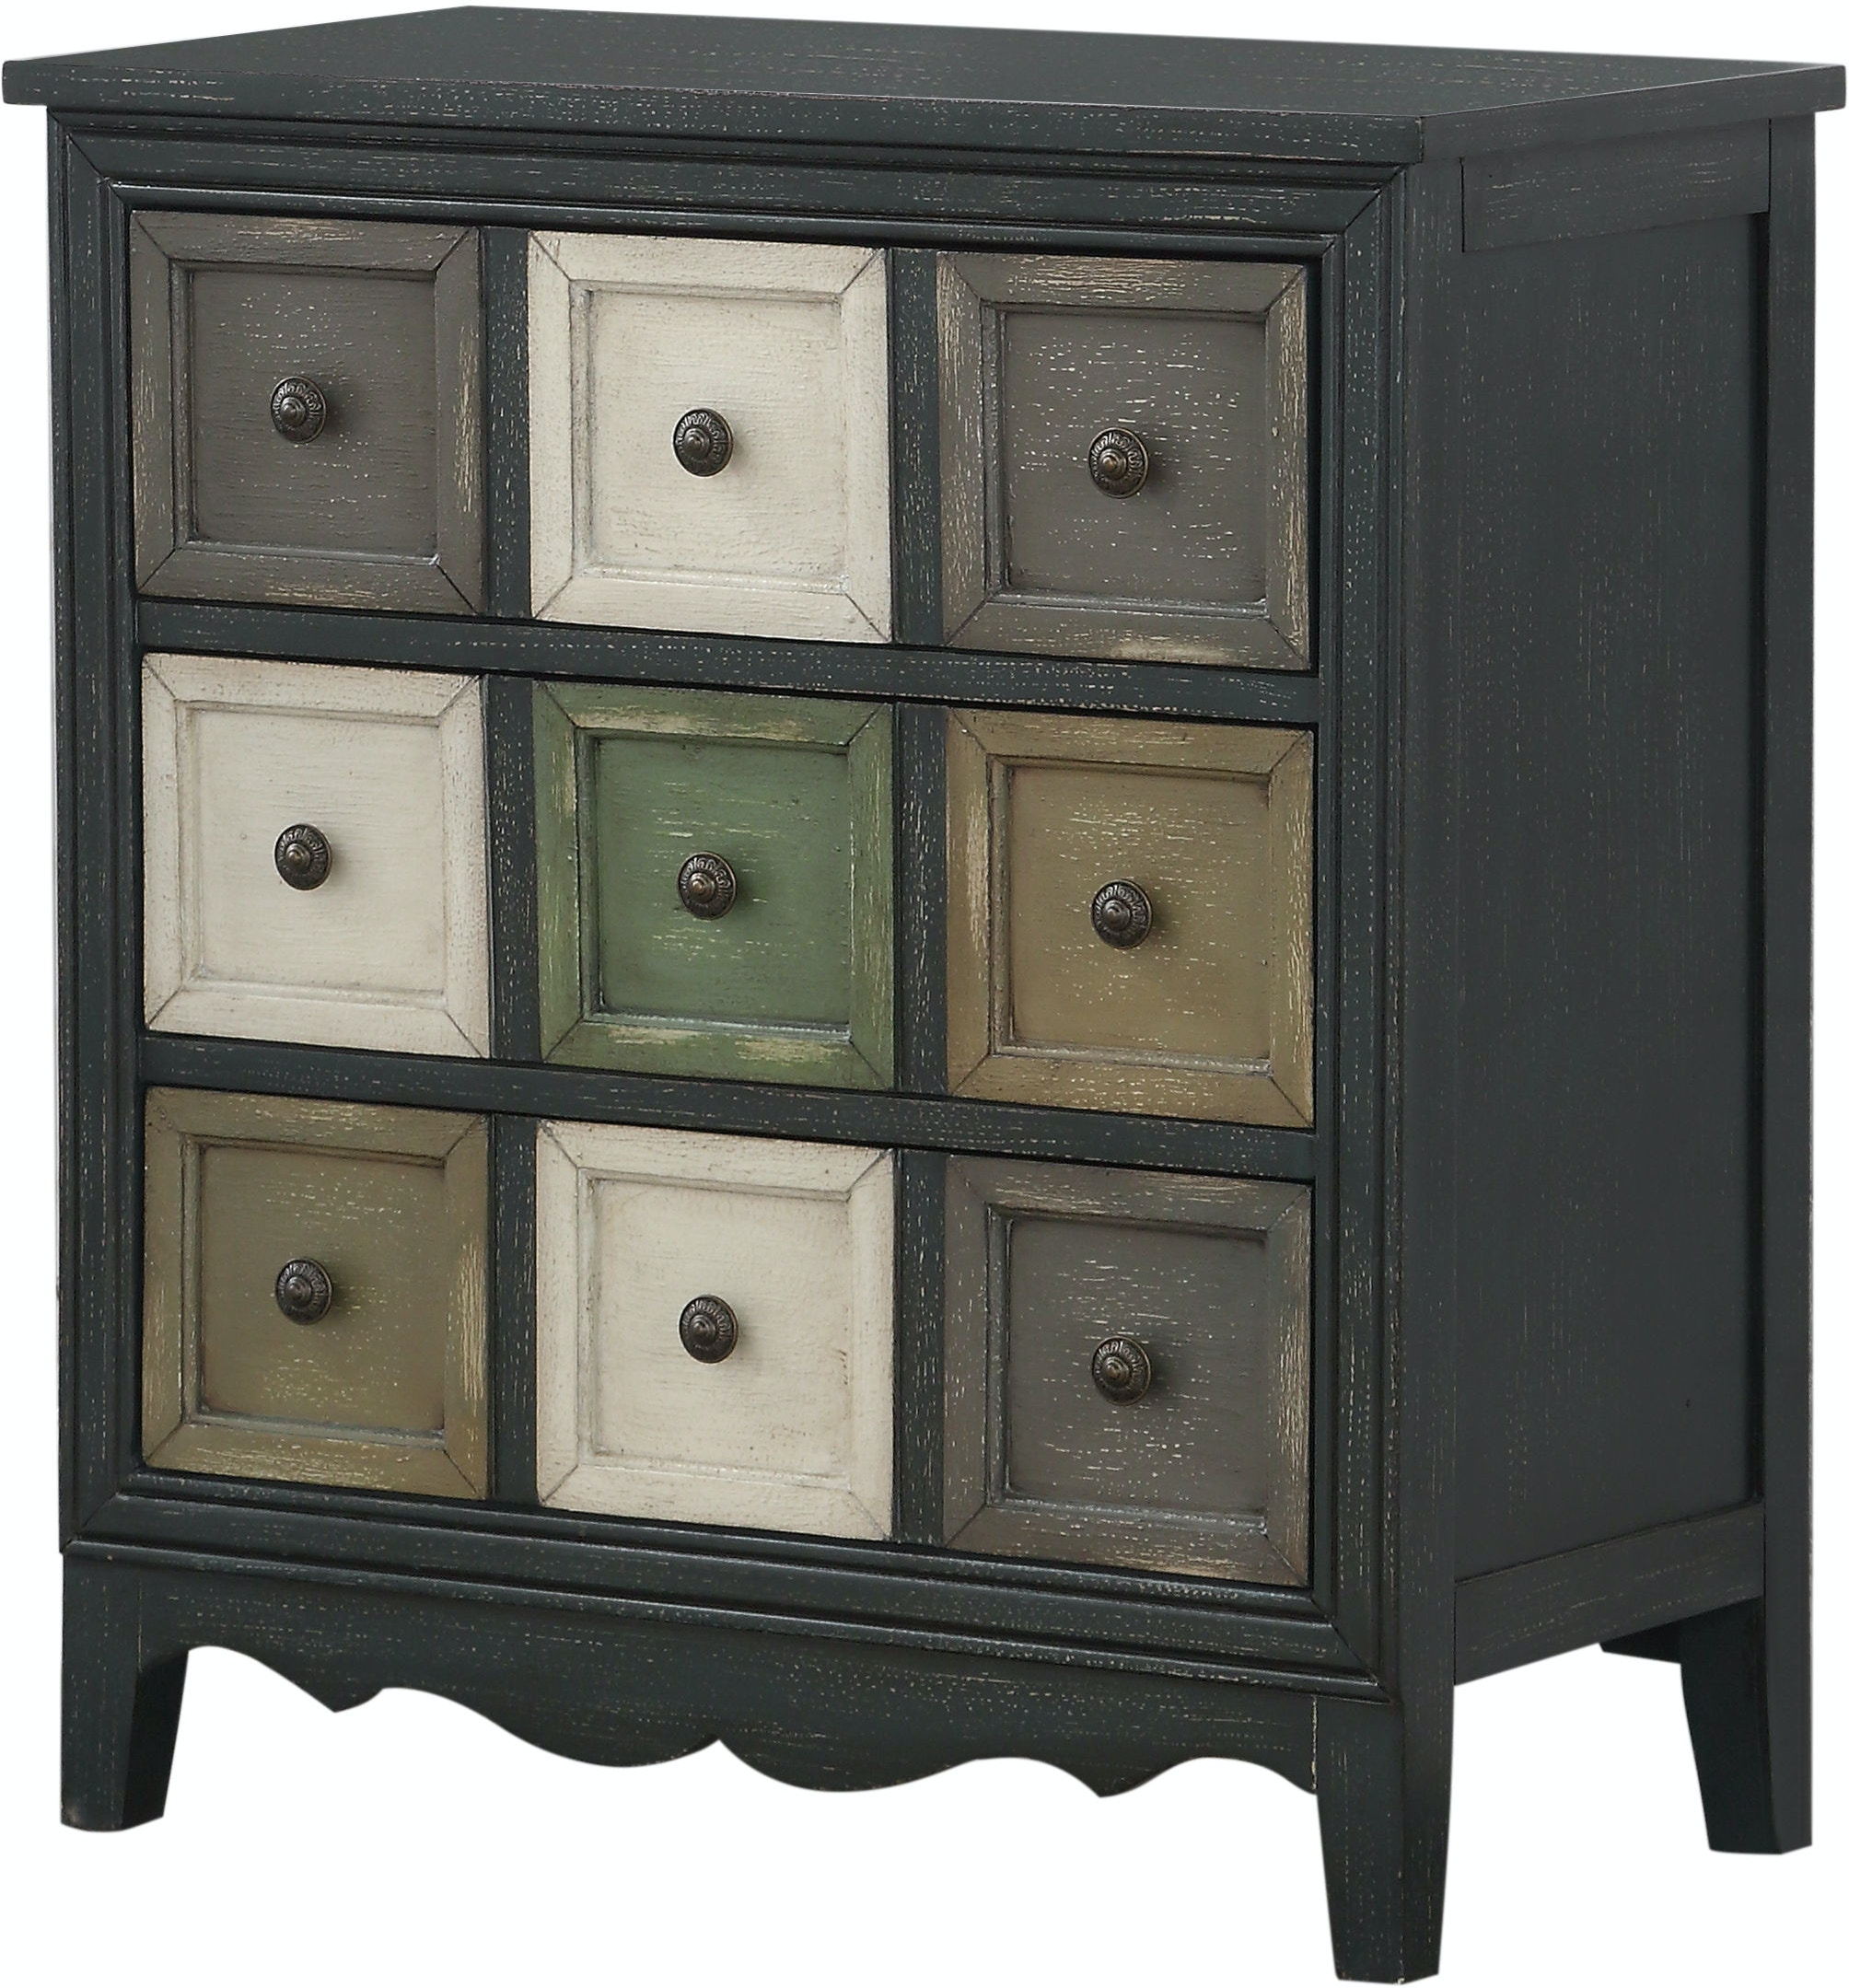 22616 Bakersfield Multi Color 3 Drawer Chest $349.99